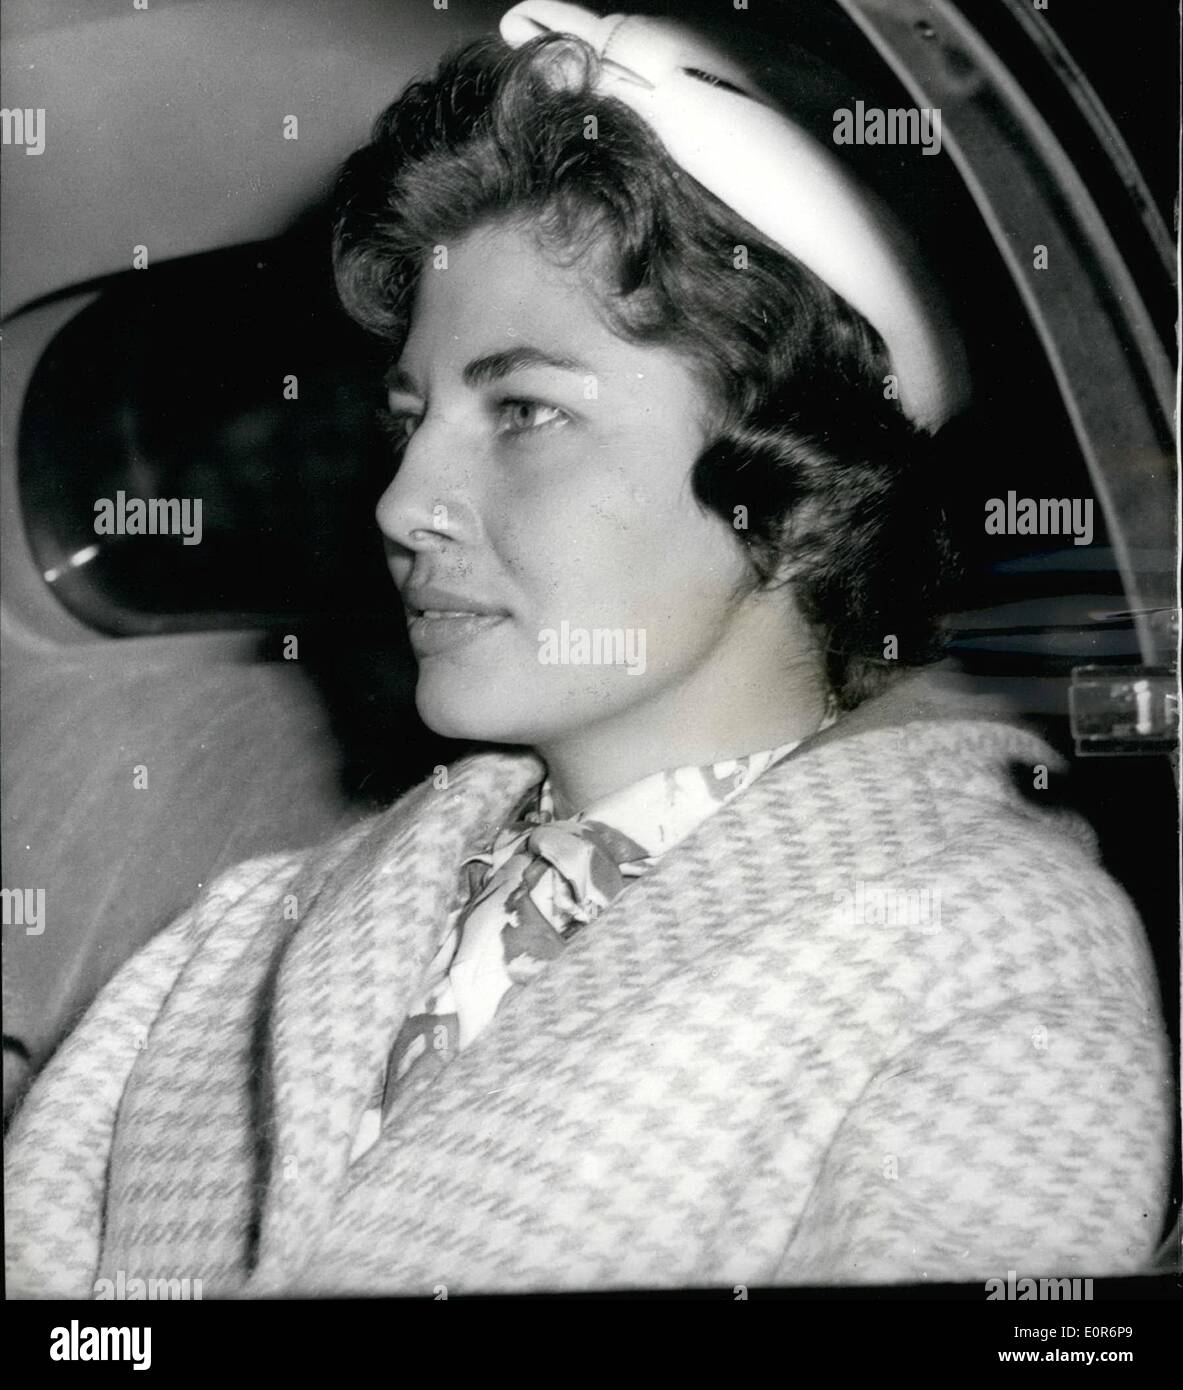 Jun. 06, 1958 - Ex Queen Soraya of Persia arrives in London; Traveling as Mrs. Soraya Esfardiary - Bakhtiary, Ex Queen Soraya of Persia arrived in London this morning on the s.s. Queen ELizabeth boat train. She traveled from New York and is expected to fly to Germany almost immediately. She intends to keep her future plans secret. Photo Shows Ex-Queen in her car when she left Waterloo Station this morning. - Stock Image